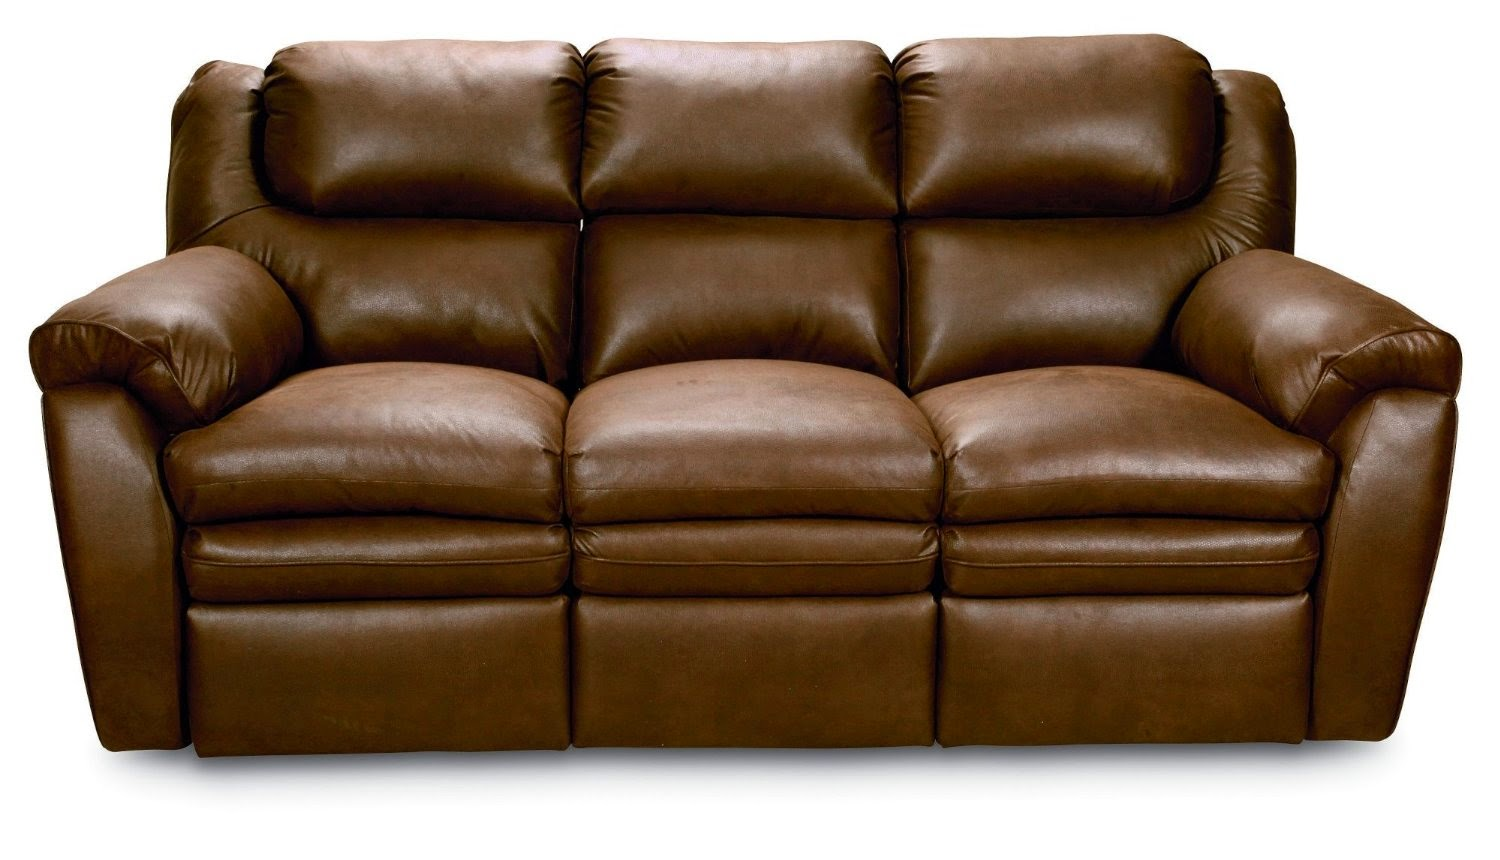 Power Recliner Sofa Canada How To Clean A Cover Reclining Sofas For Sale: Lane Hendrix Reviews